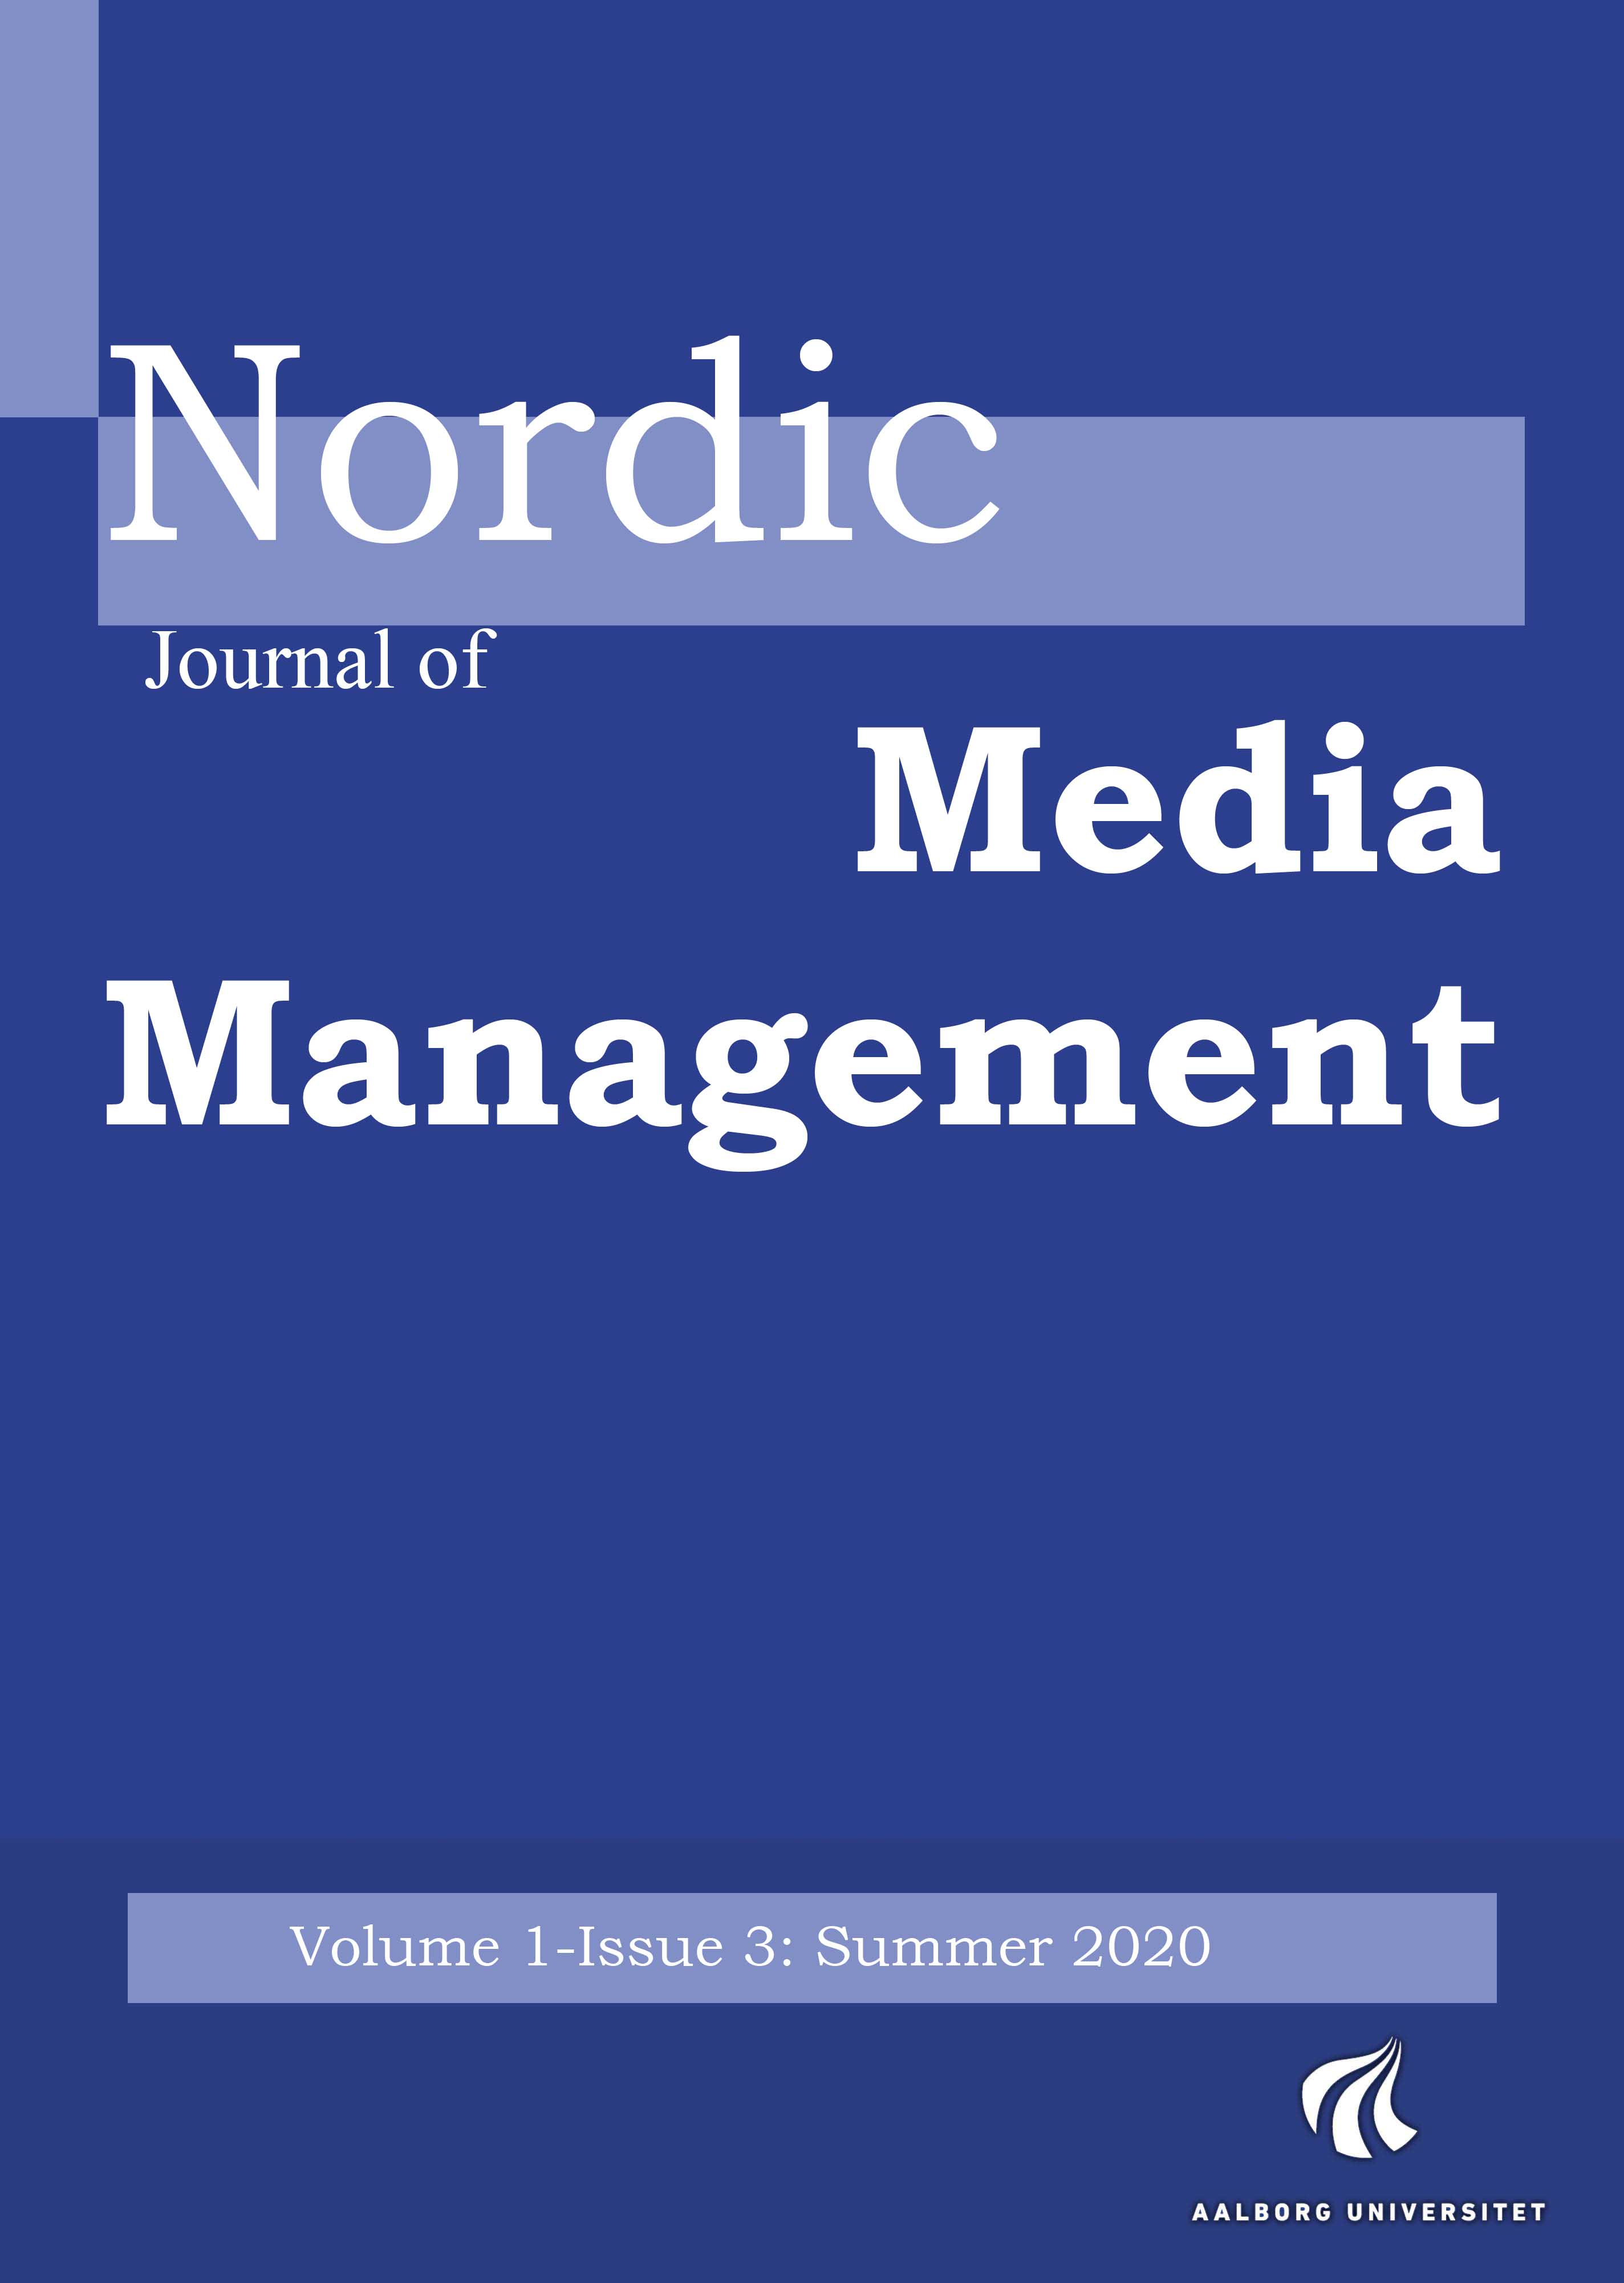 Nordic Journal of Media Management 1(3)